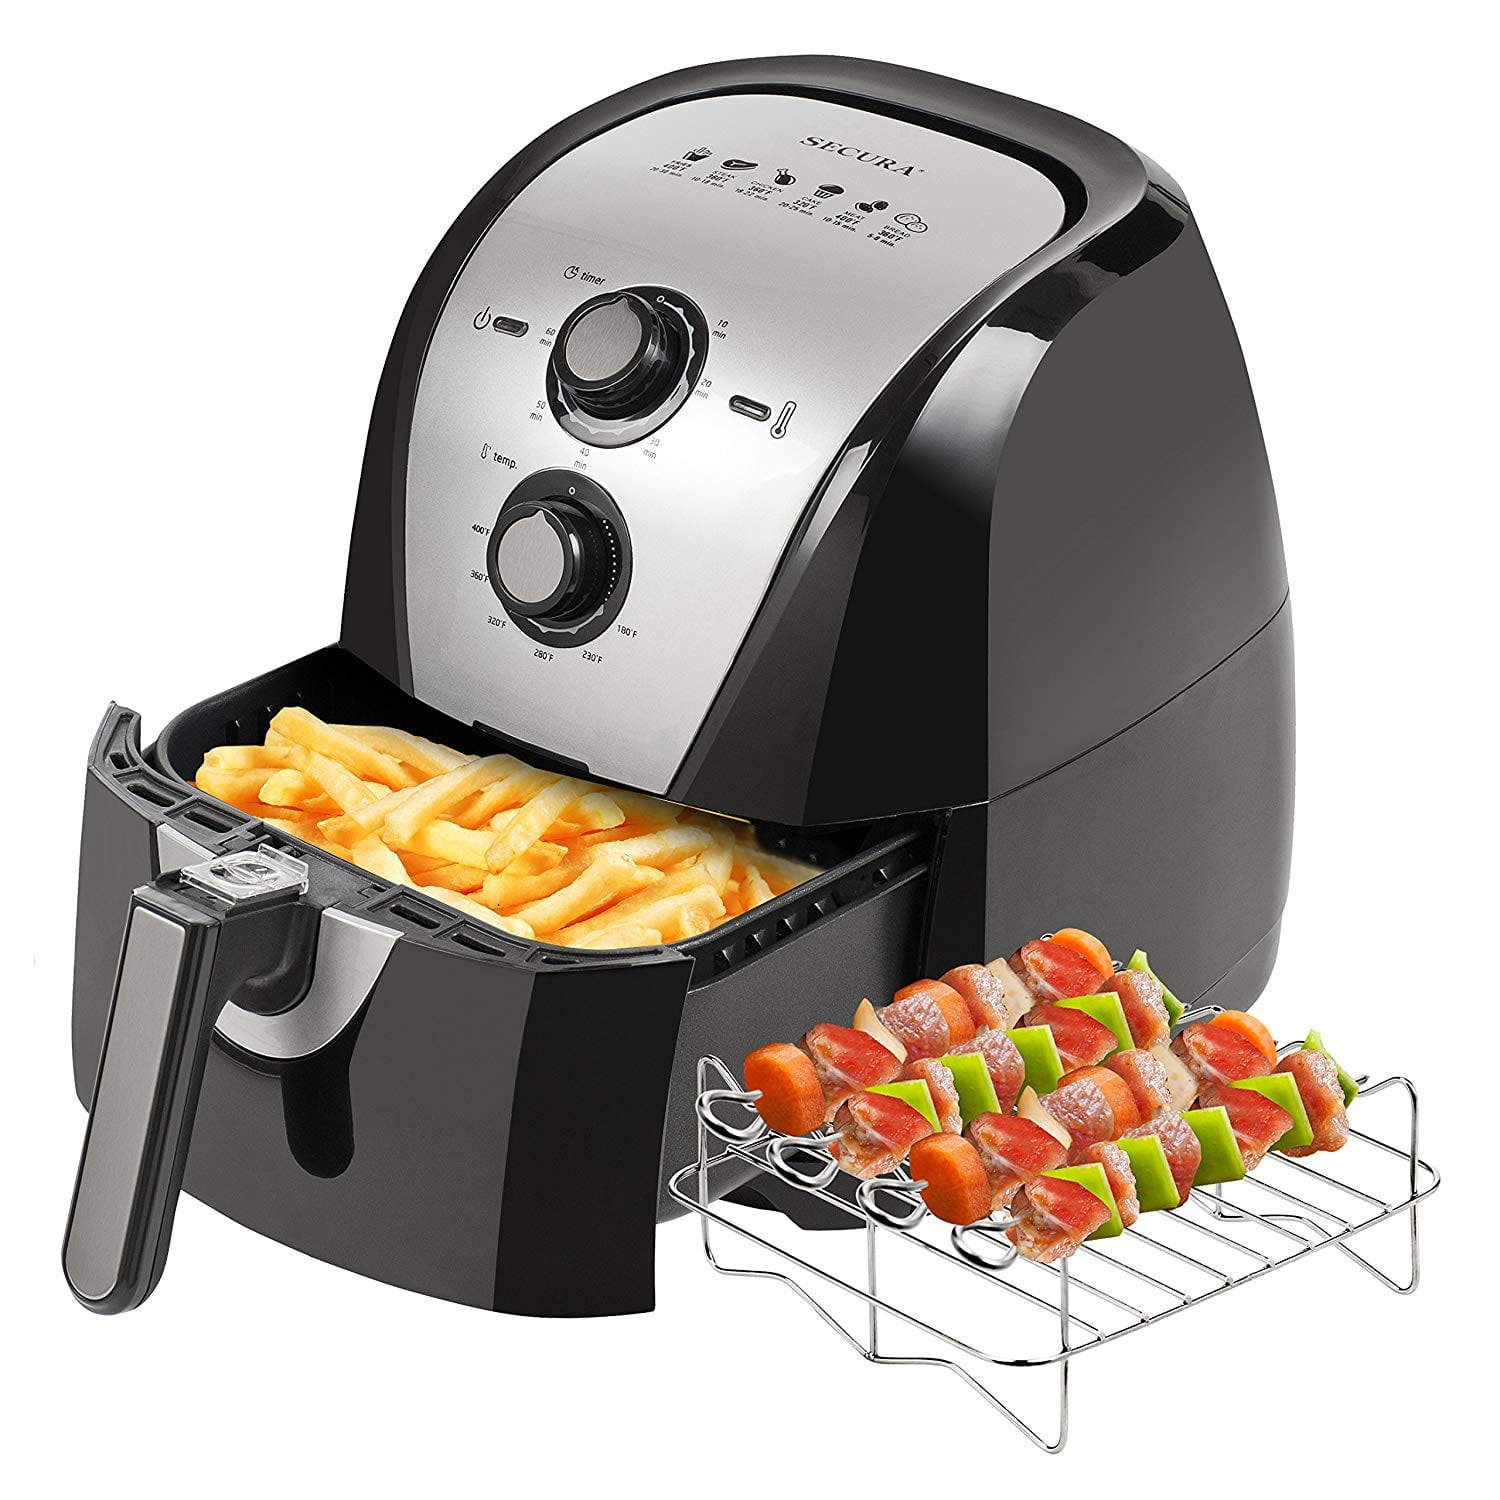 Secura Electric Extra Large Capacity Hot Air Fryer